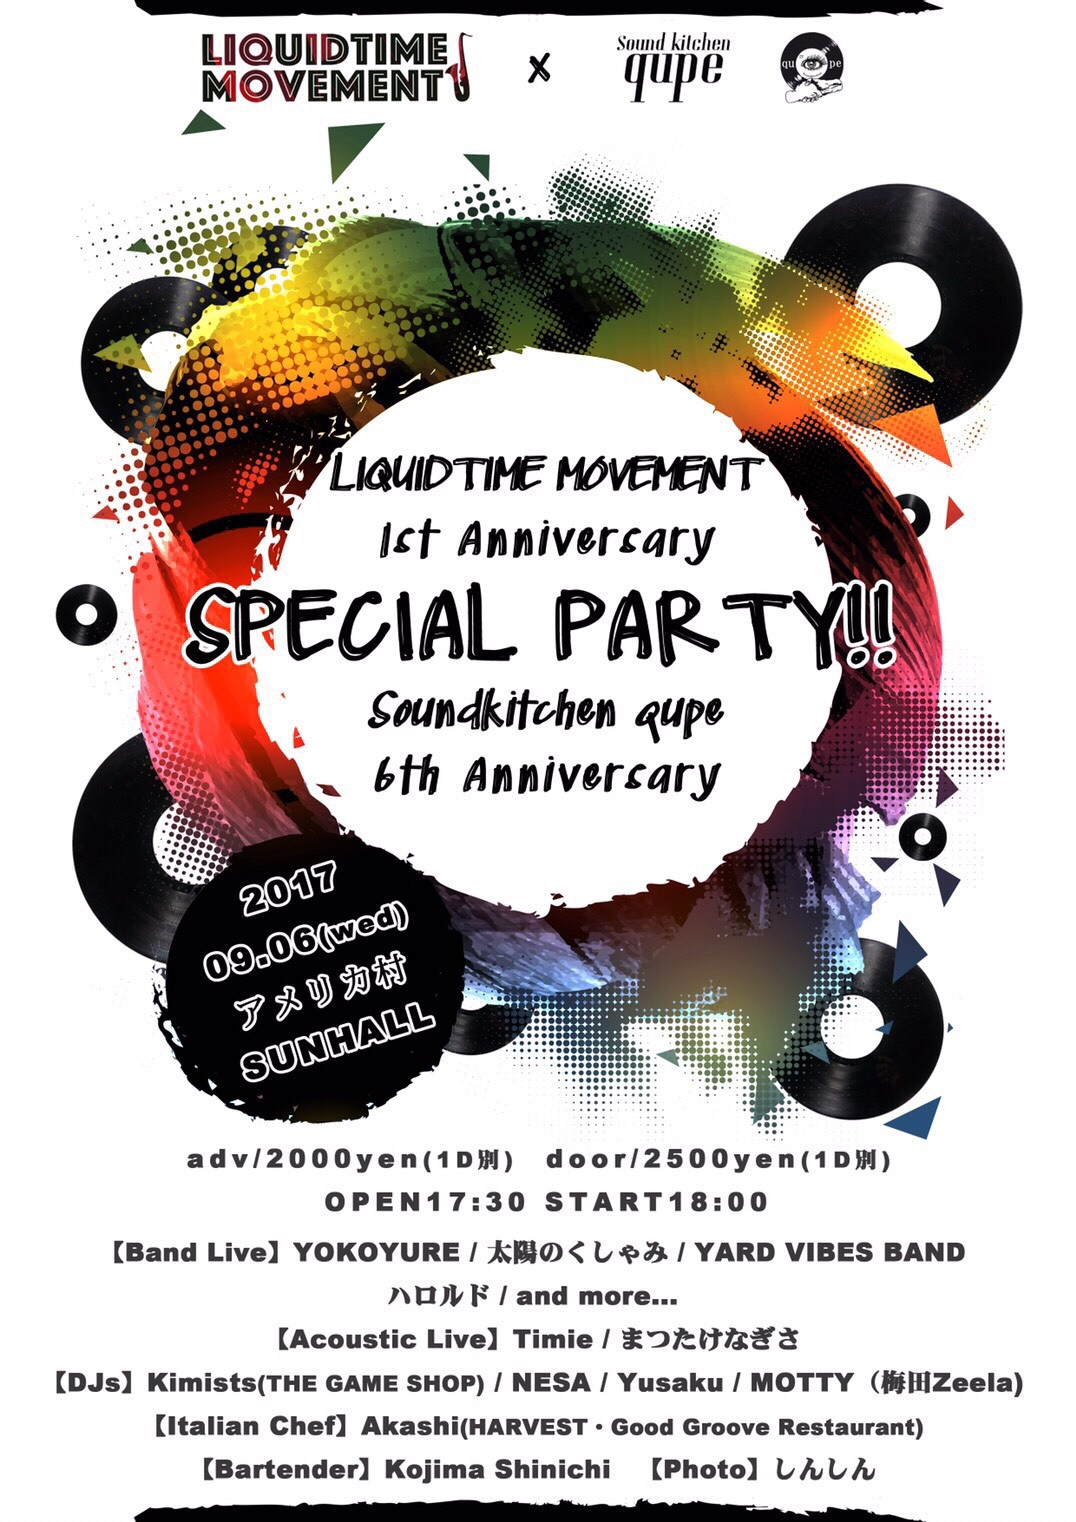 LIQUIDTIME  MOVEMENT 1st Anniversary SPECIAL PARTY!!